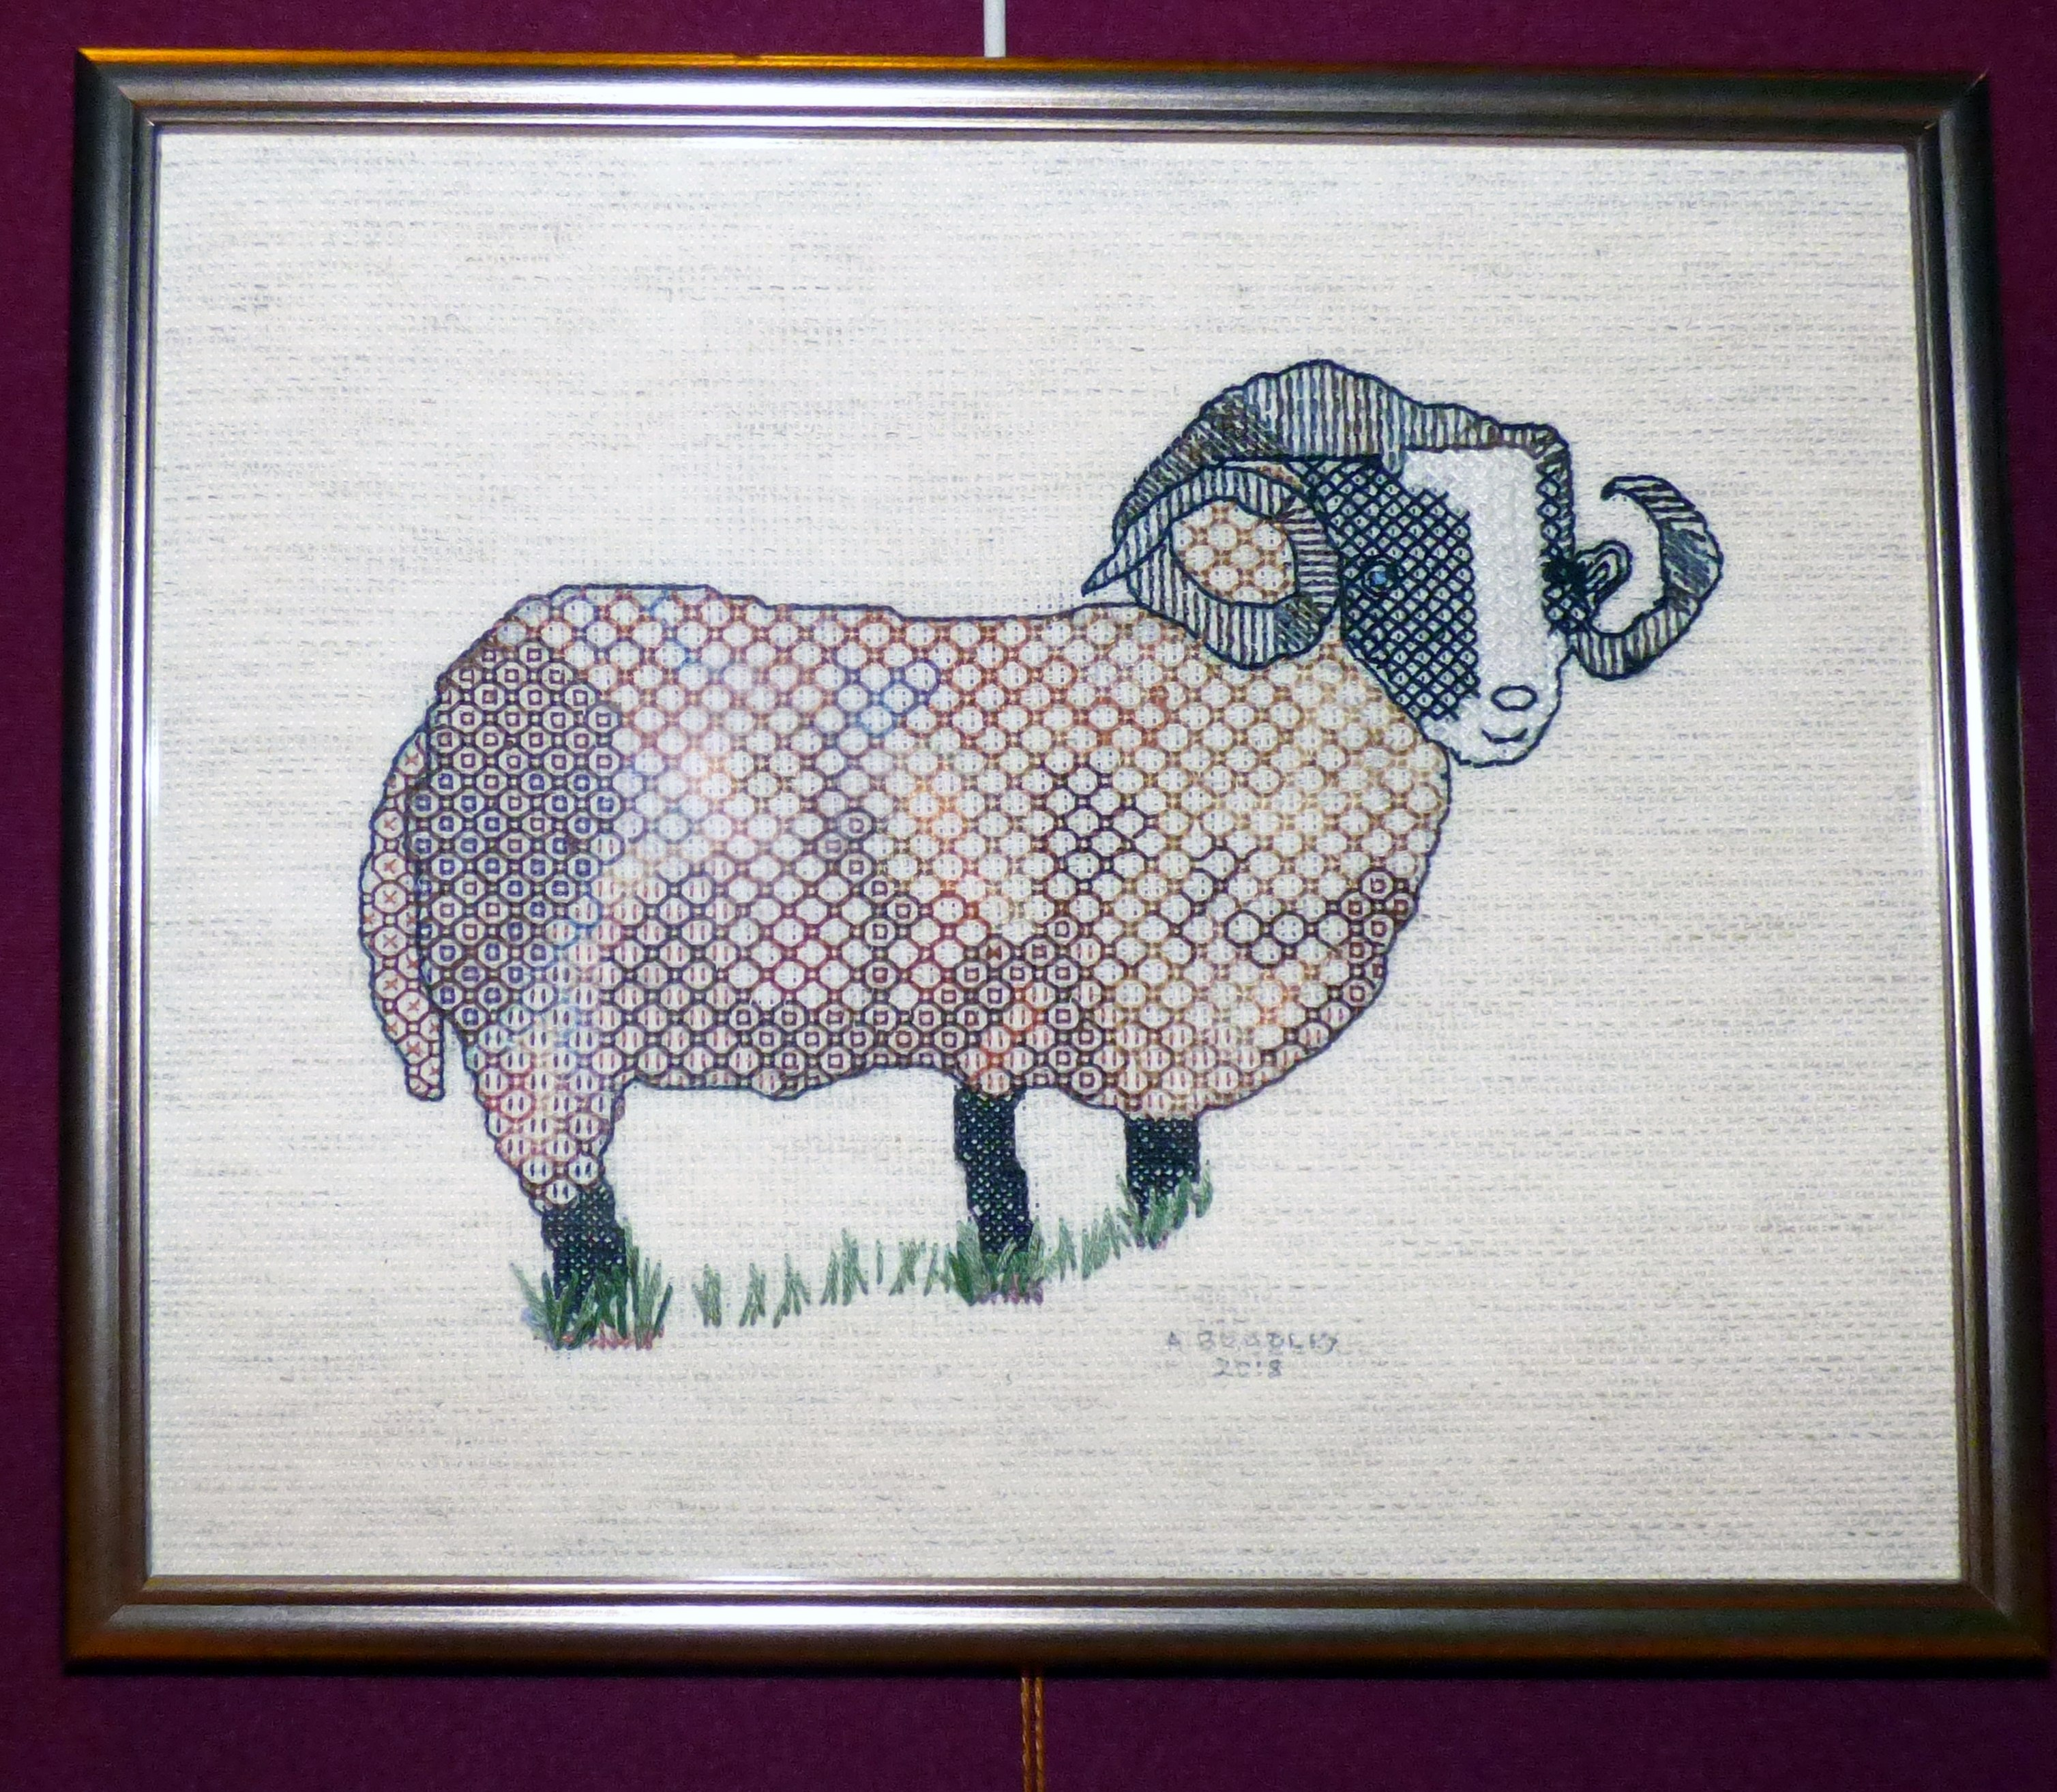 ATAPAWA SHEEP by Alice Bradley, blackwork, Endeavour exhibition, Liverpool Cathedral, Sept 2018